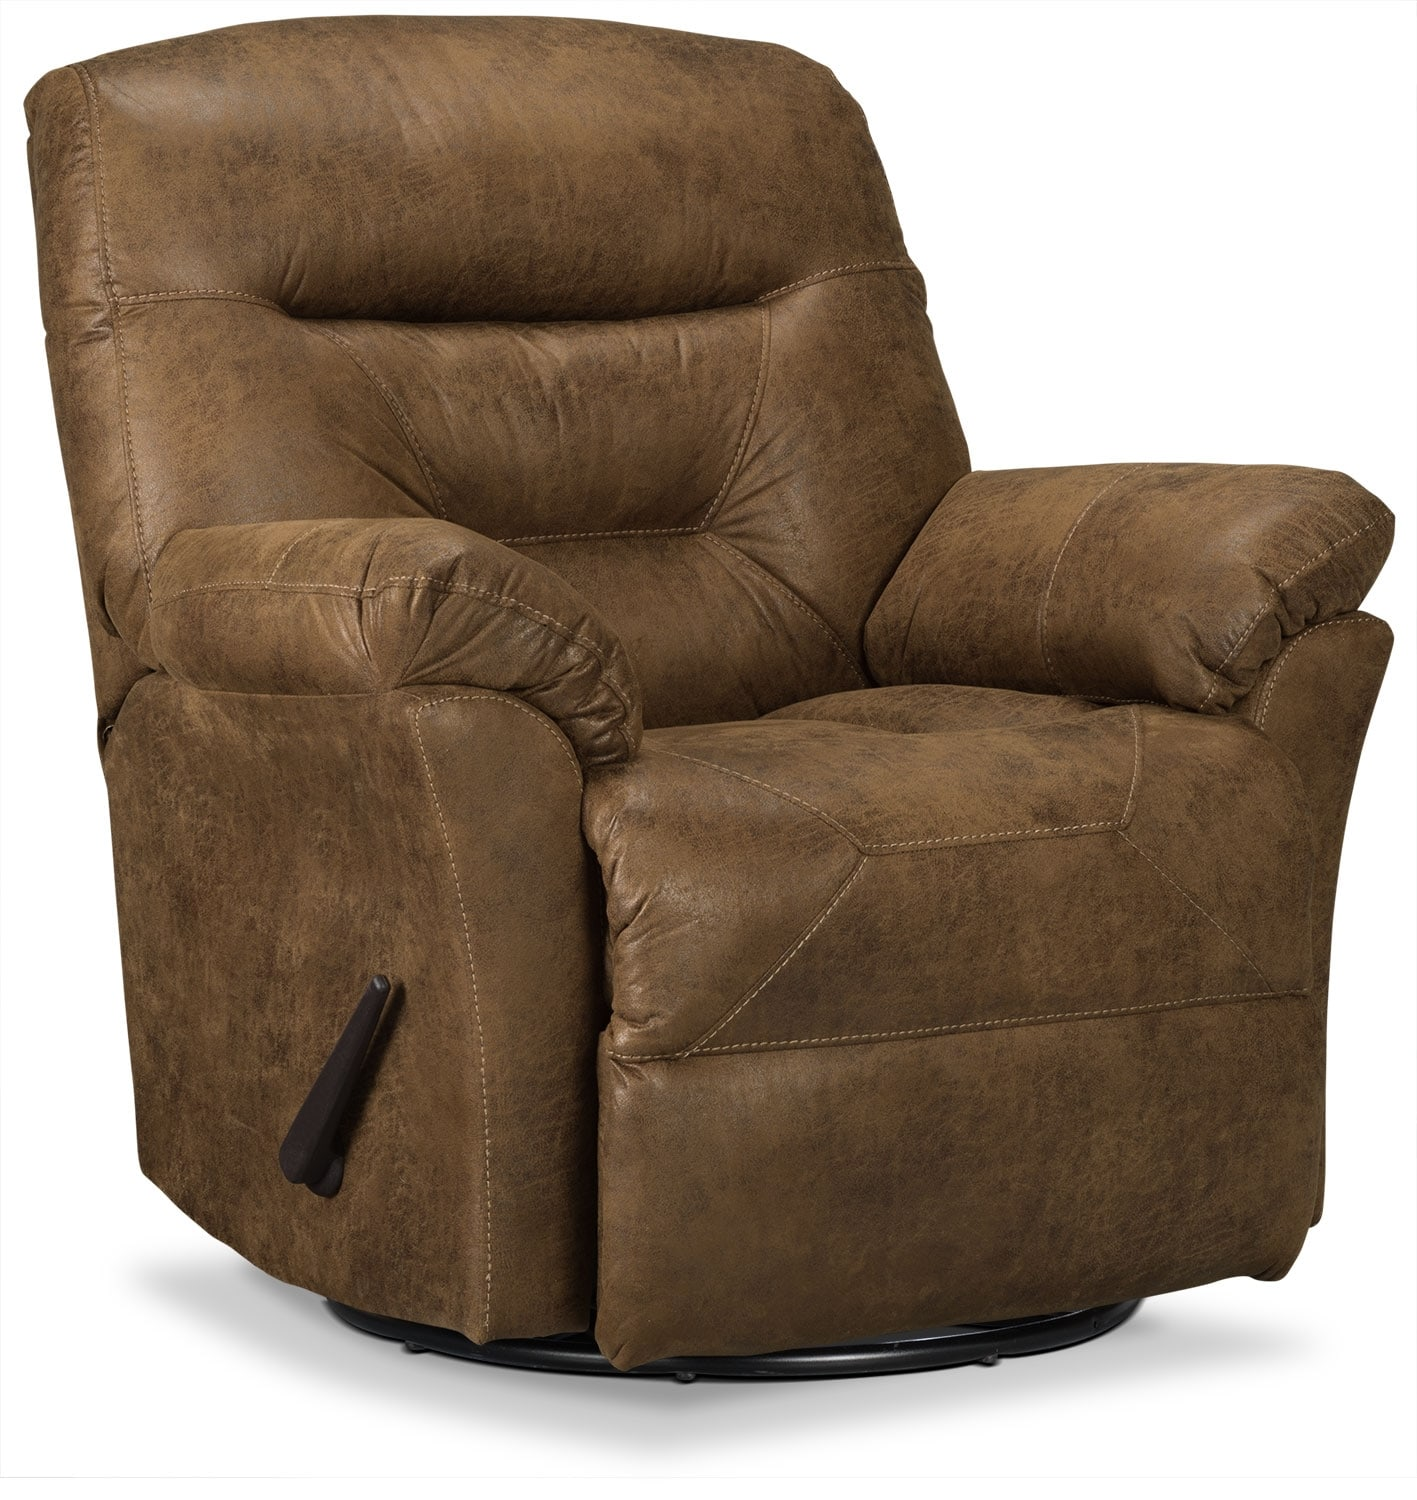 Living Room Furniture - Designed2B Recliner 4579 Leather-Look Fabric Swivel Glider Recliner - Stout